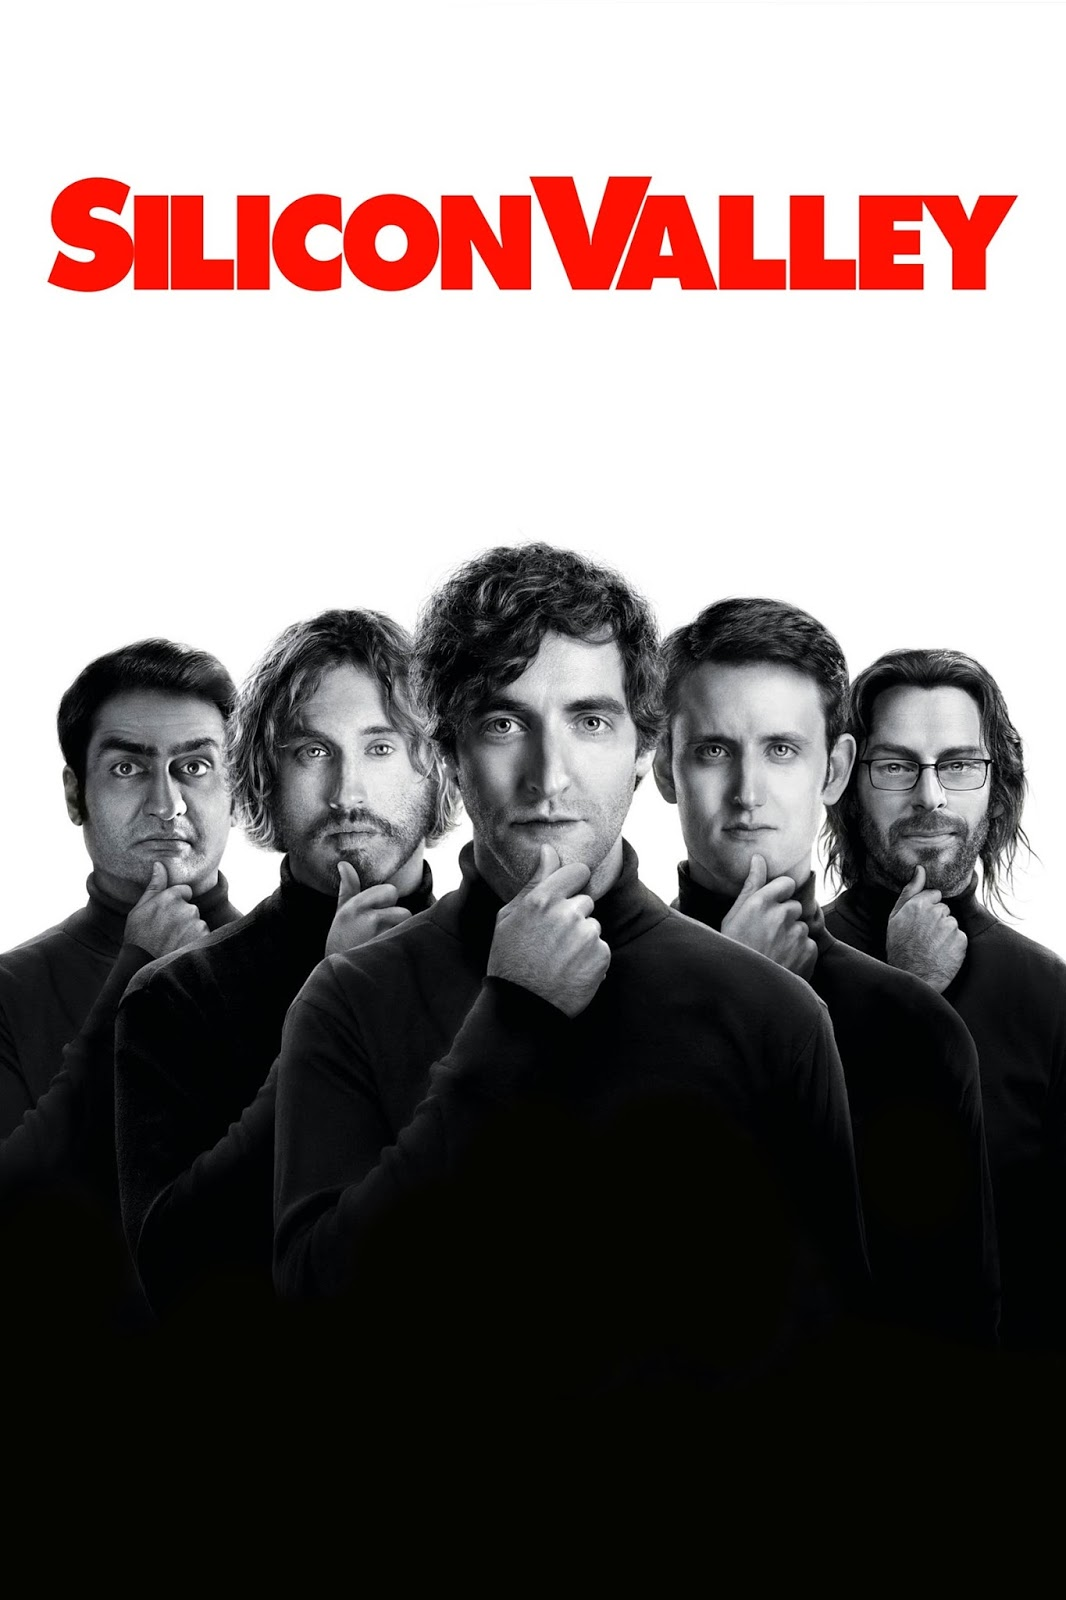 Silicon Valley 2014 - Full (HD)